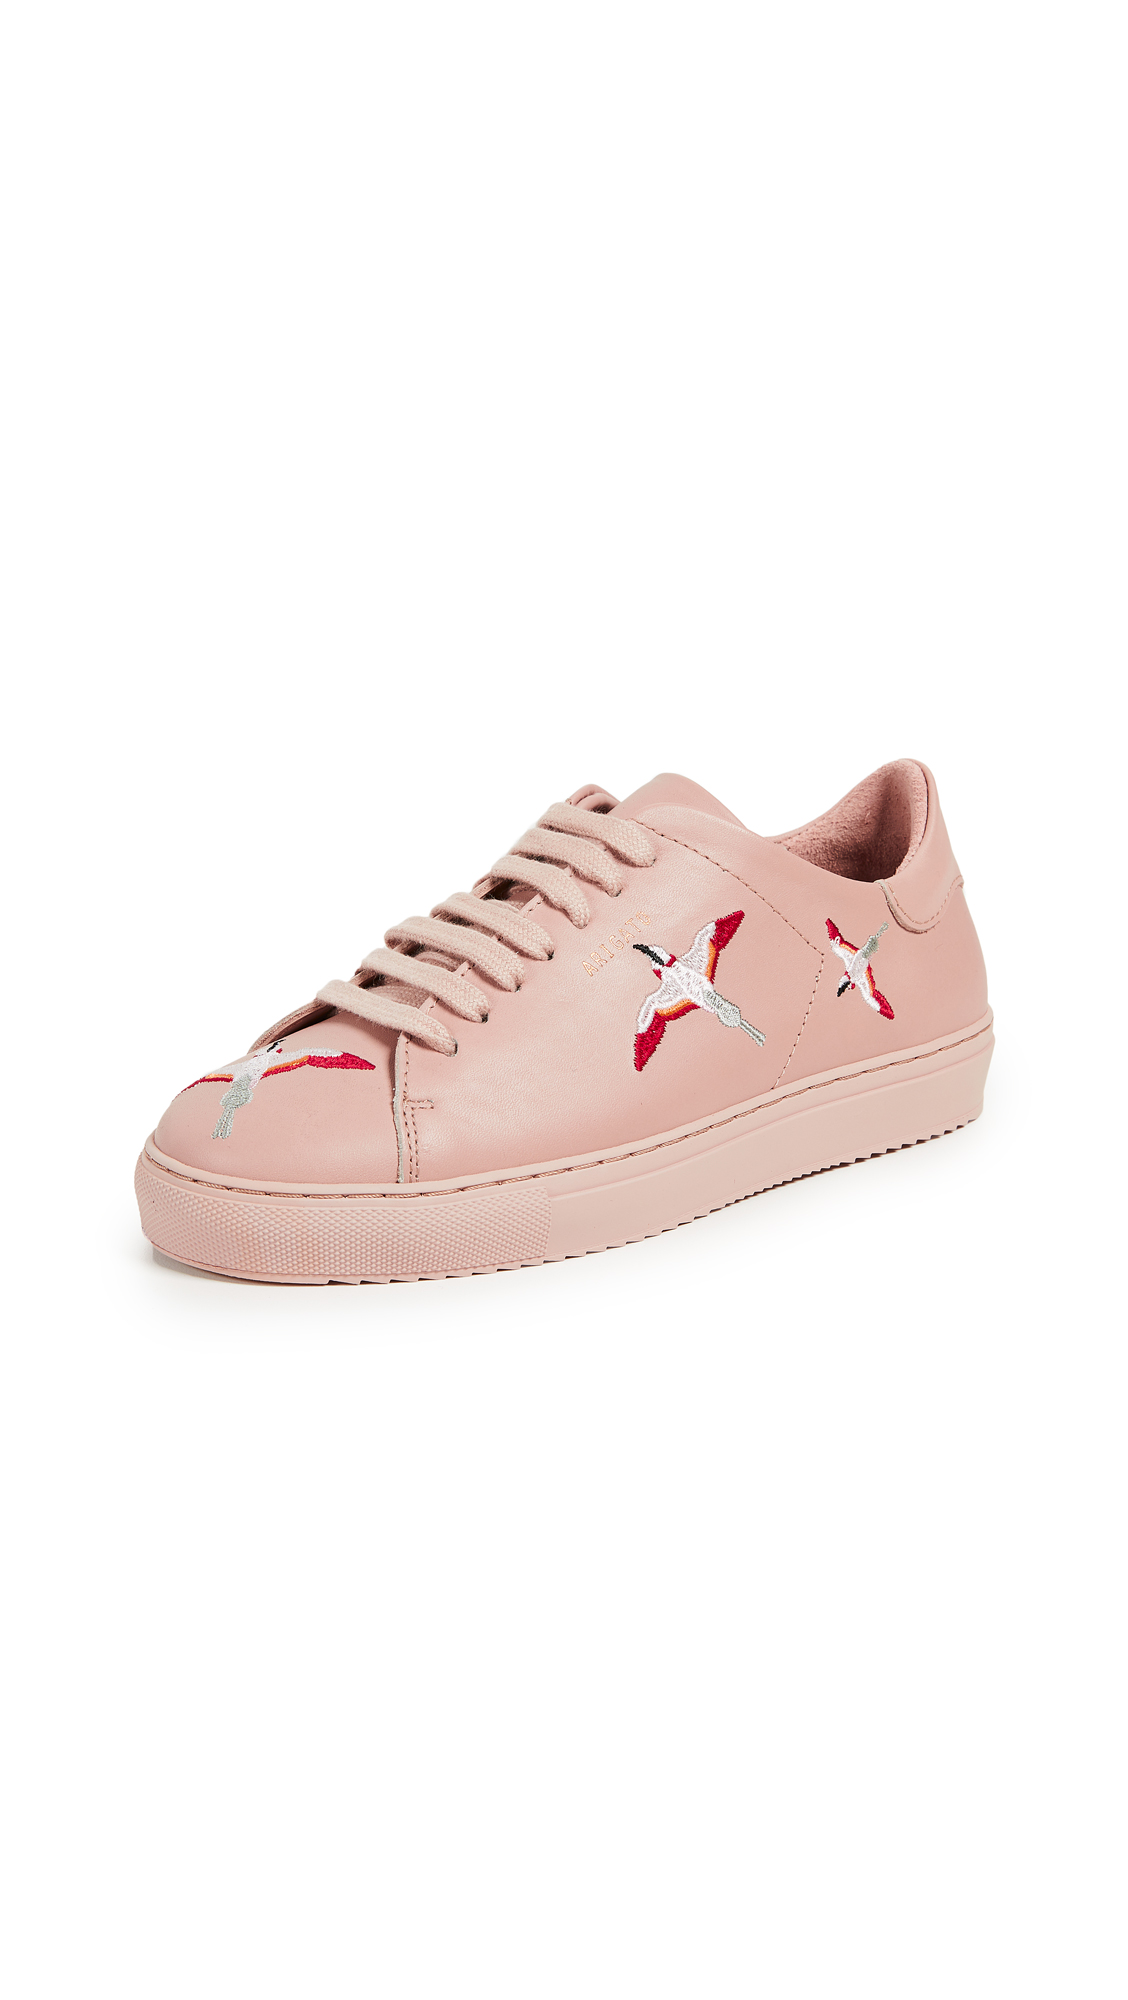 Axel Arigato Clean 90 Embroidery Sneakers - Pale Pink